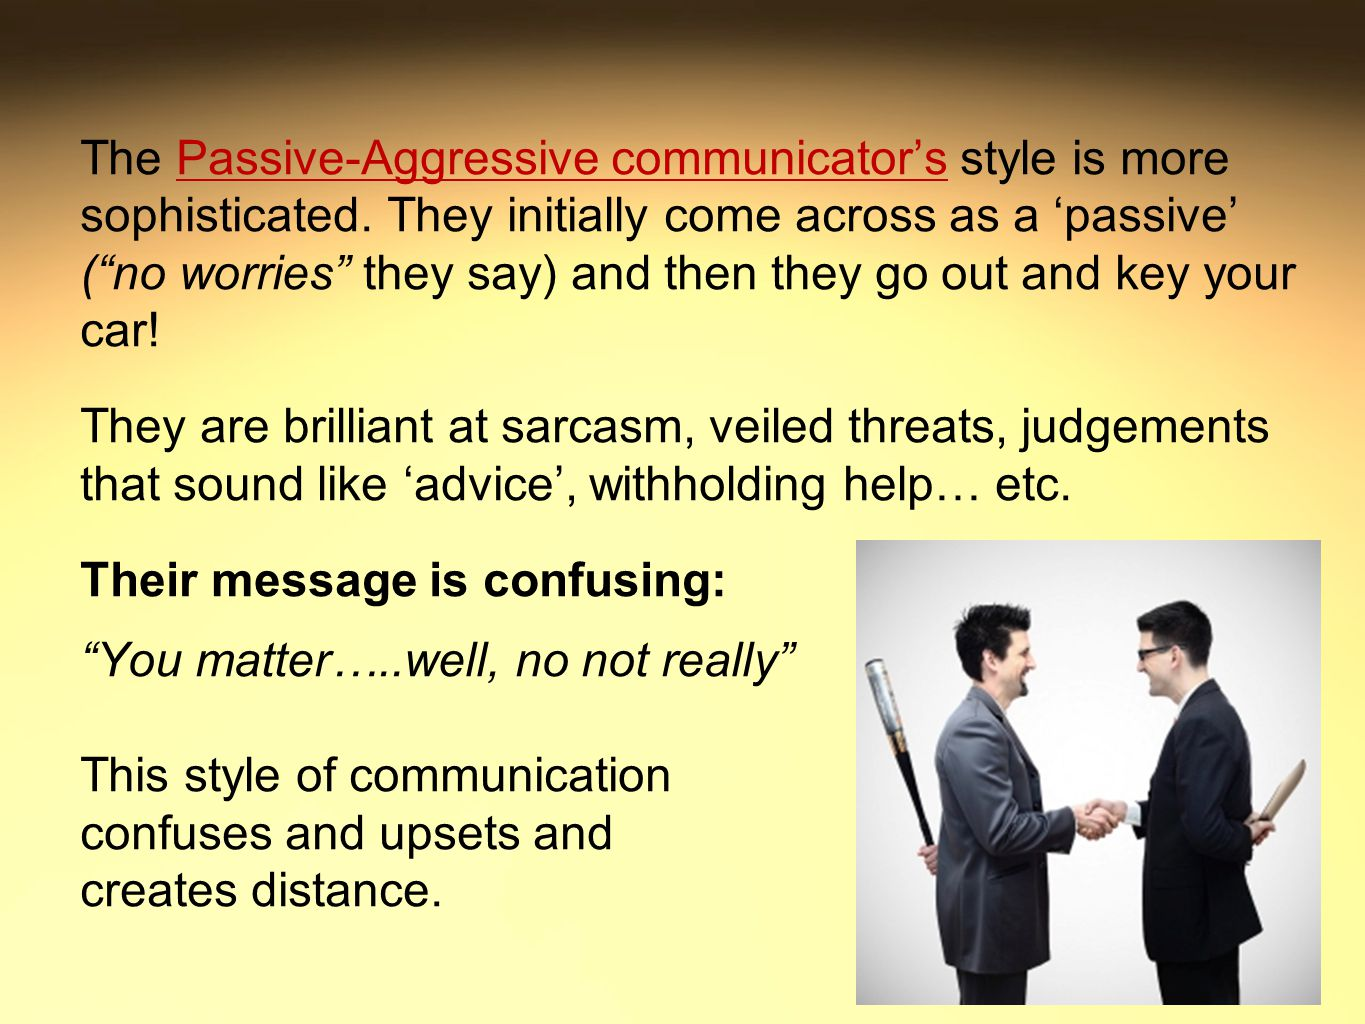 The Passive-Aggressive communicator's style is more sophisticated.